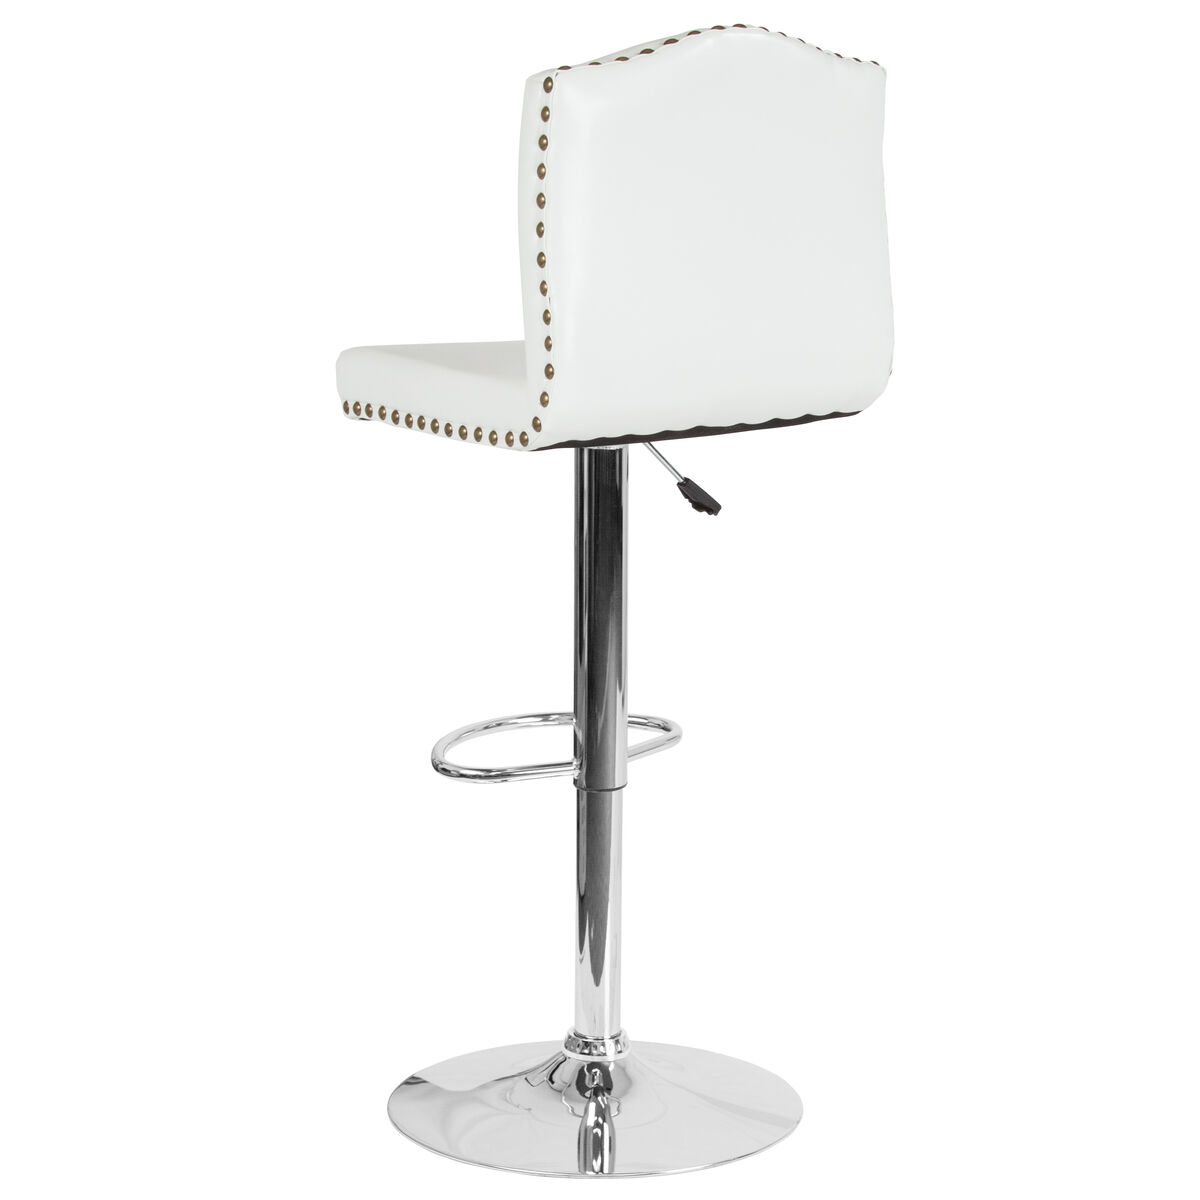 Our bellagio contemporary adjustable height barstool with accent nail trim in white leather is on sale